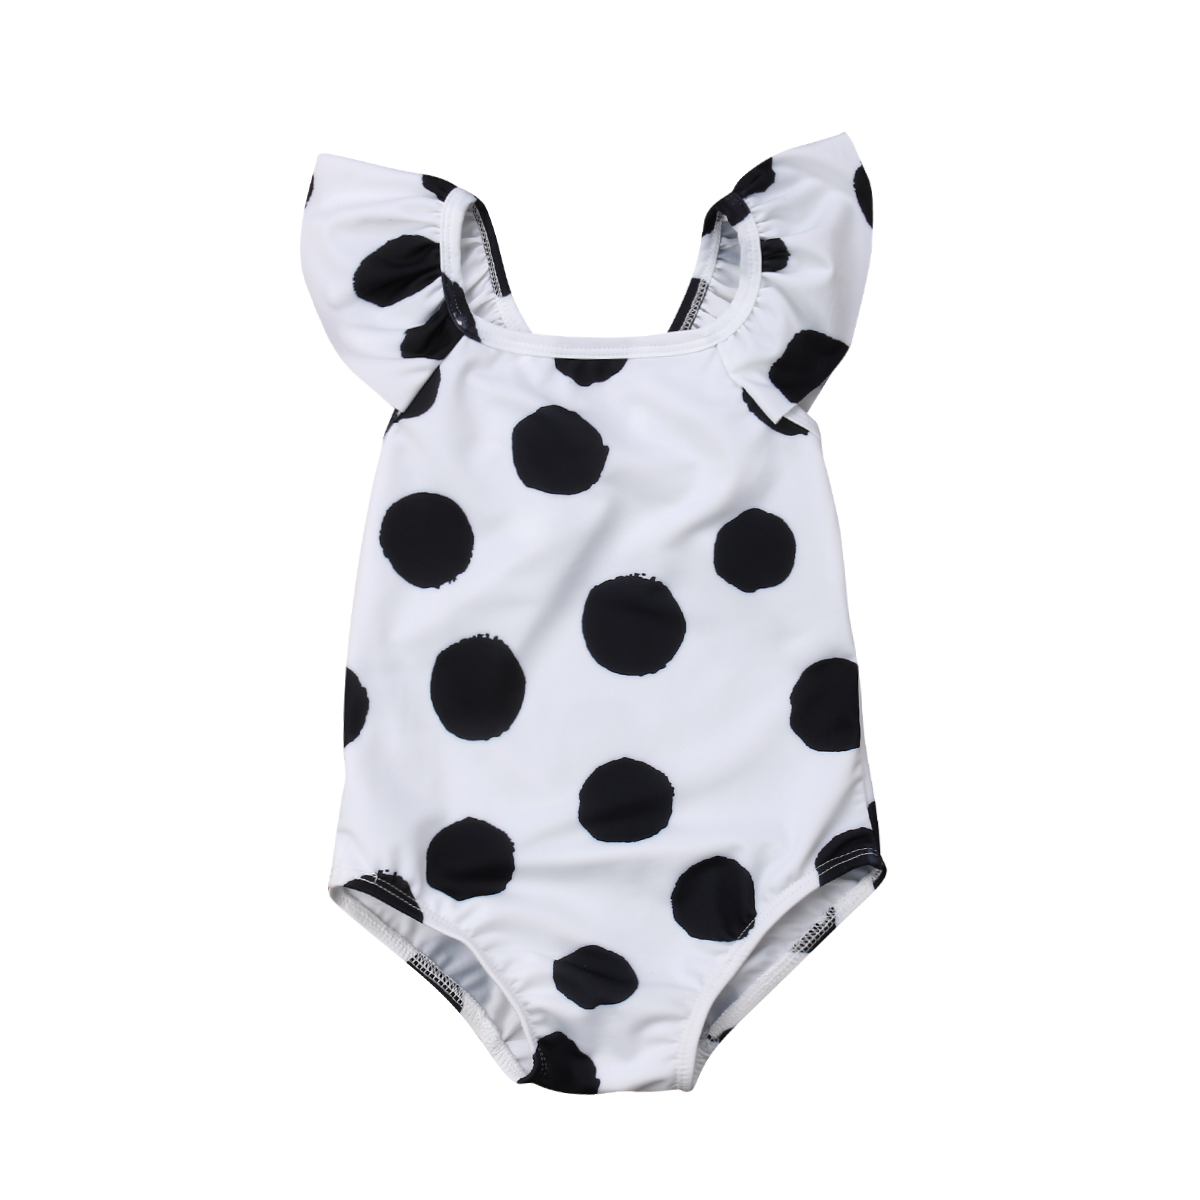 234cc130aae9f 2019 New Brand Toddler Kids Baby Girls One-piece Polka Dot Tankini Bikini  Swimwear Swimsuit